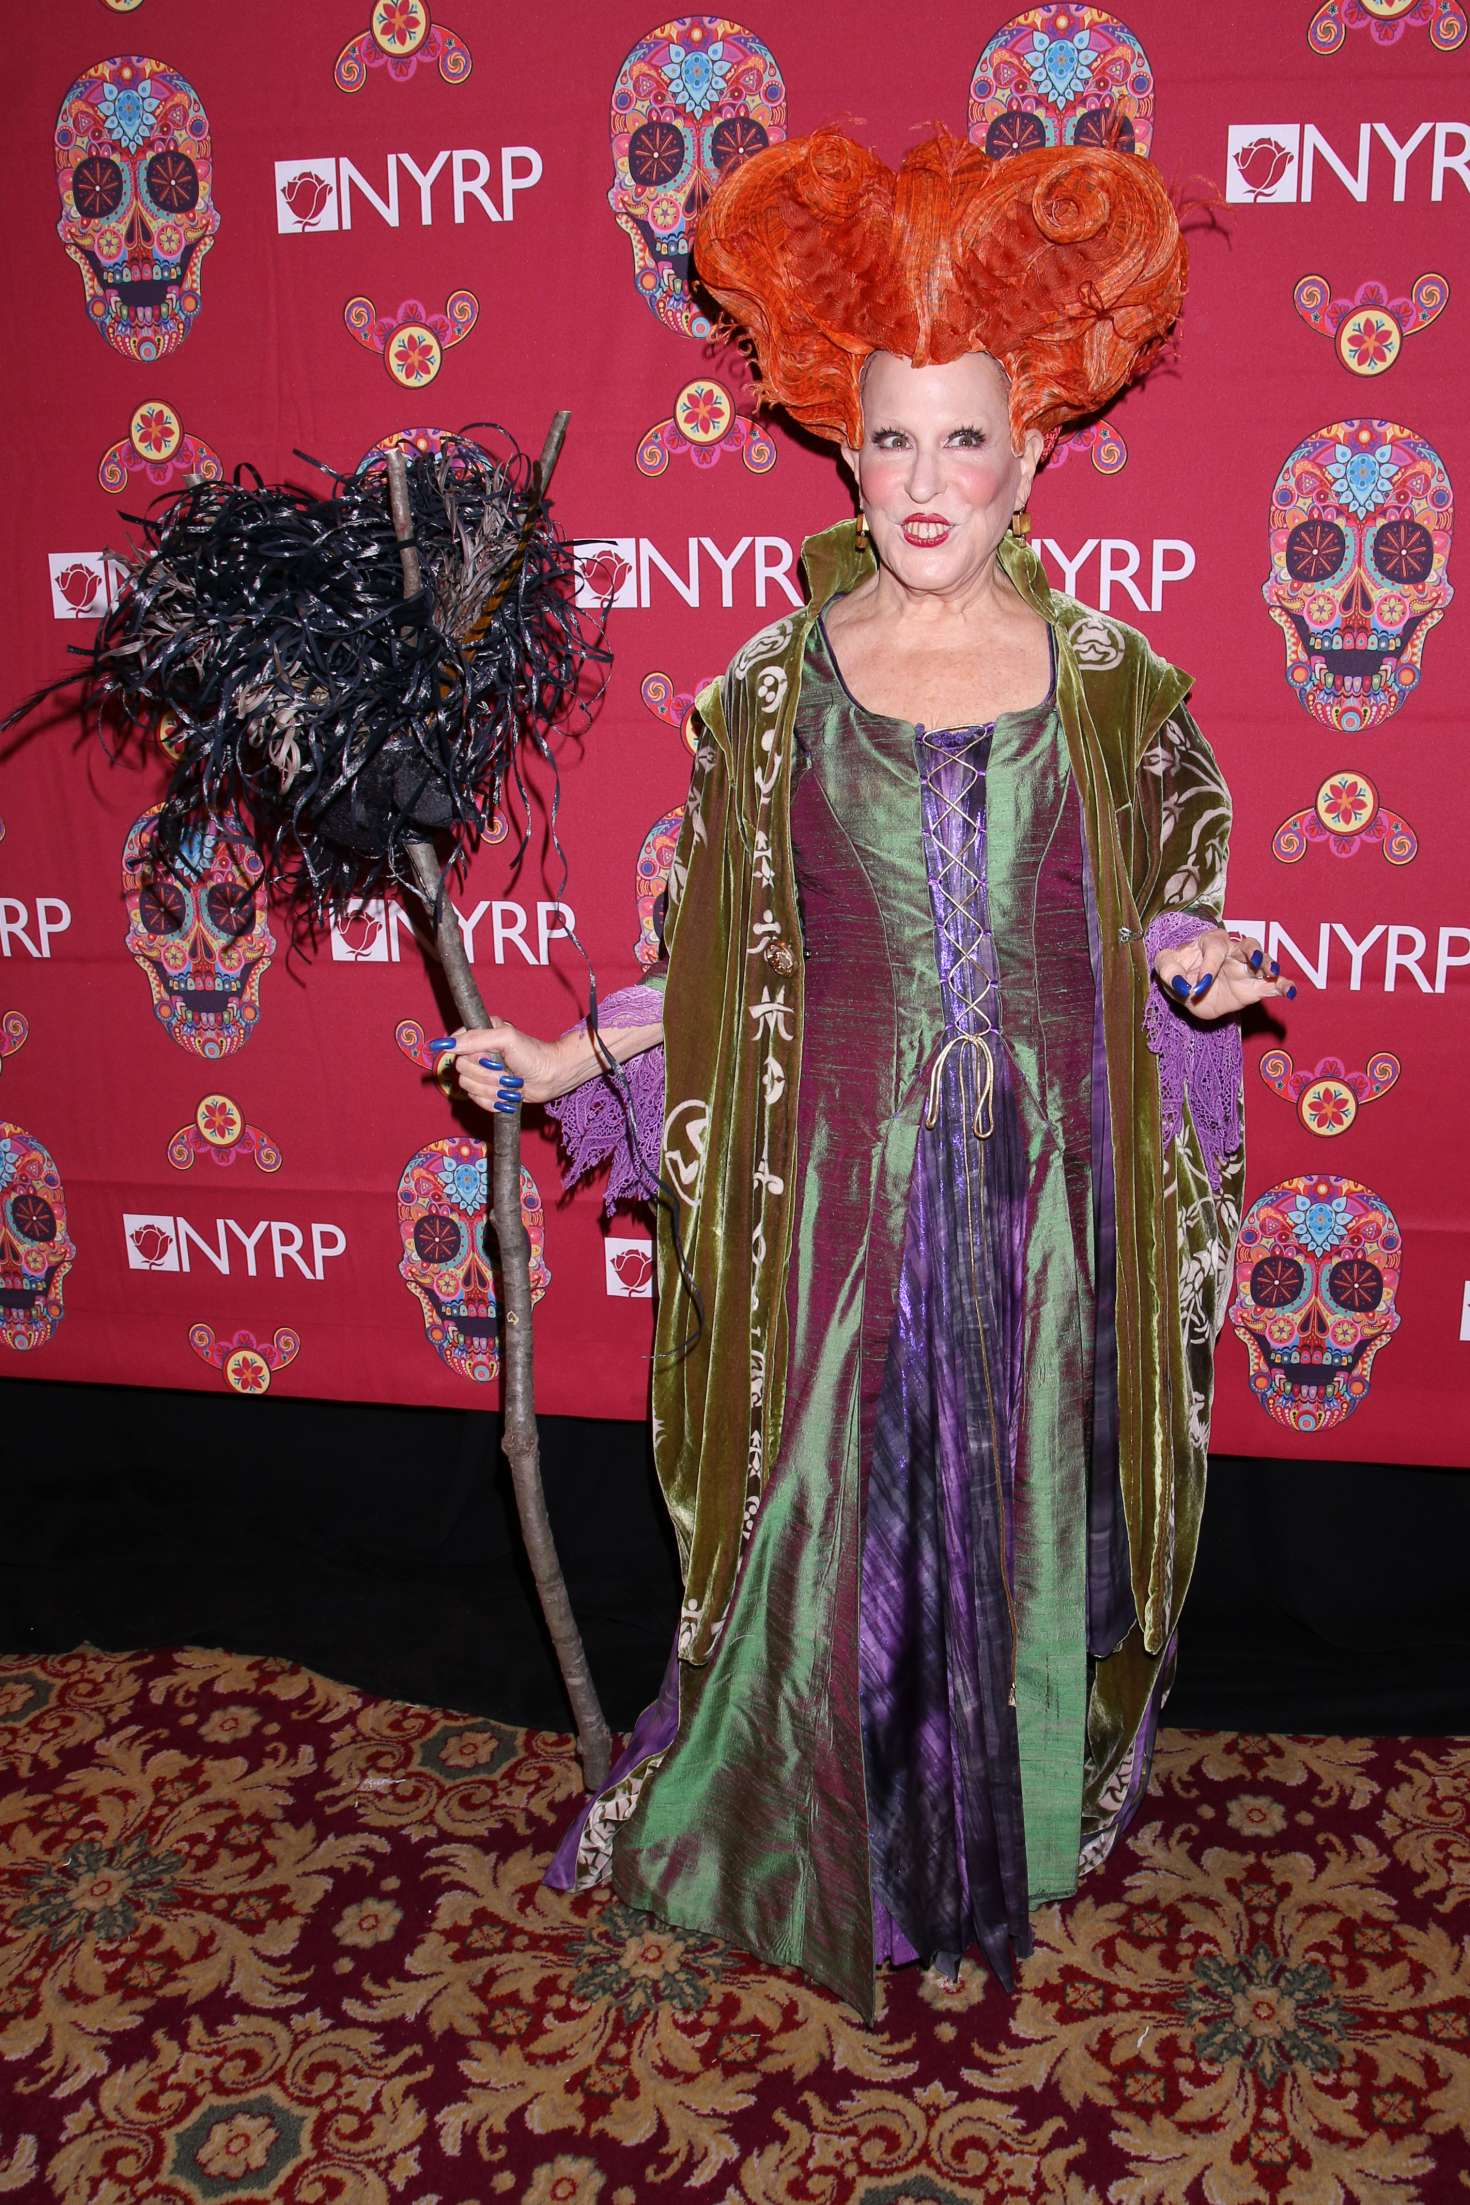 Bette Midler 2016 : Bette Midler: 2016 Halloween Bash to benefit the NYRP -01